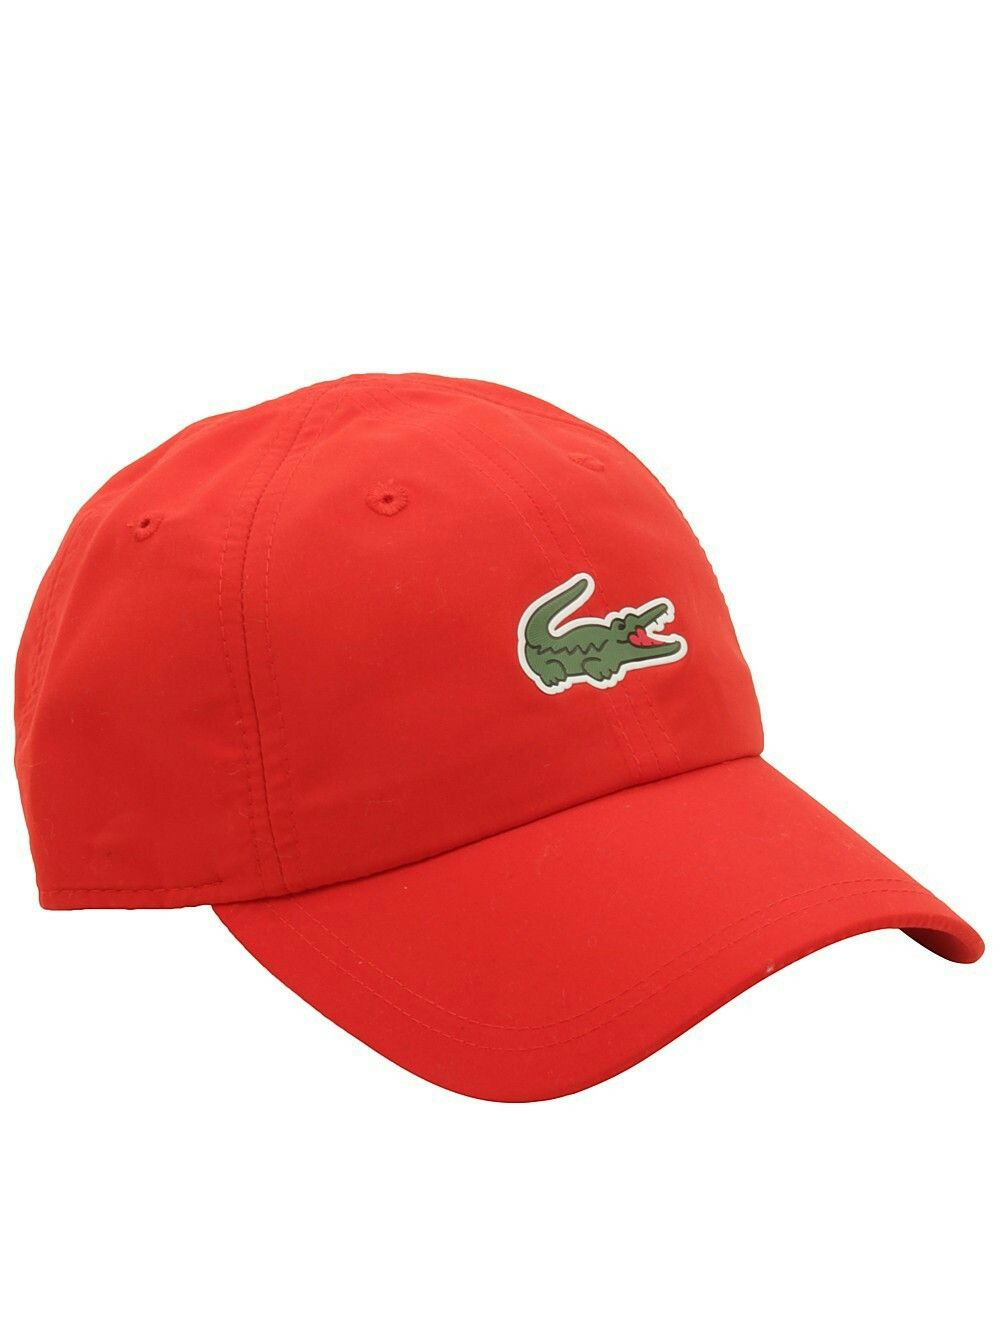 6548d49cad8 Lacoste Sport Polyester Cap with Green Croc in Matador RedPrice   44.95